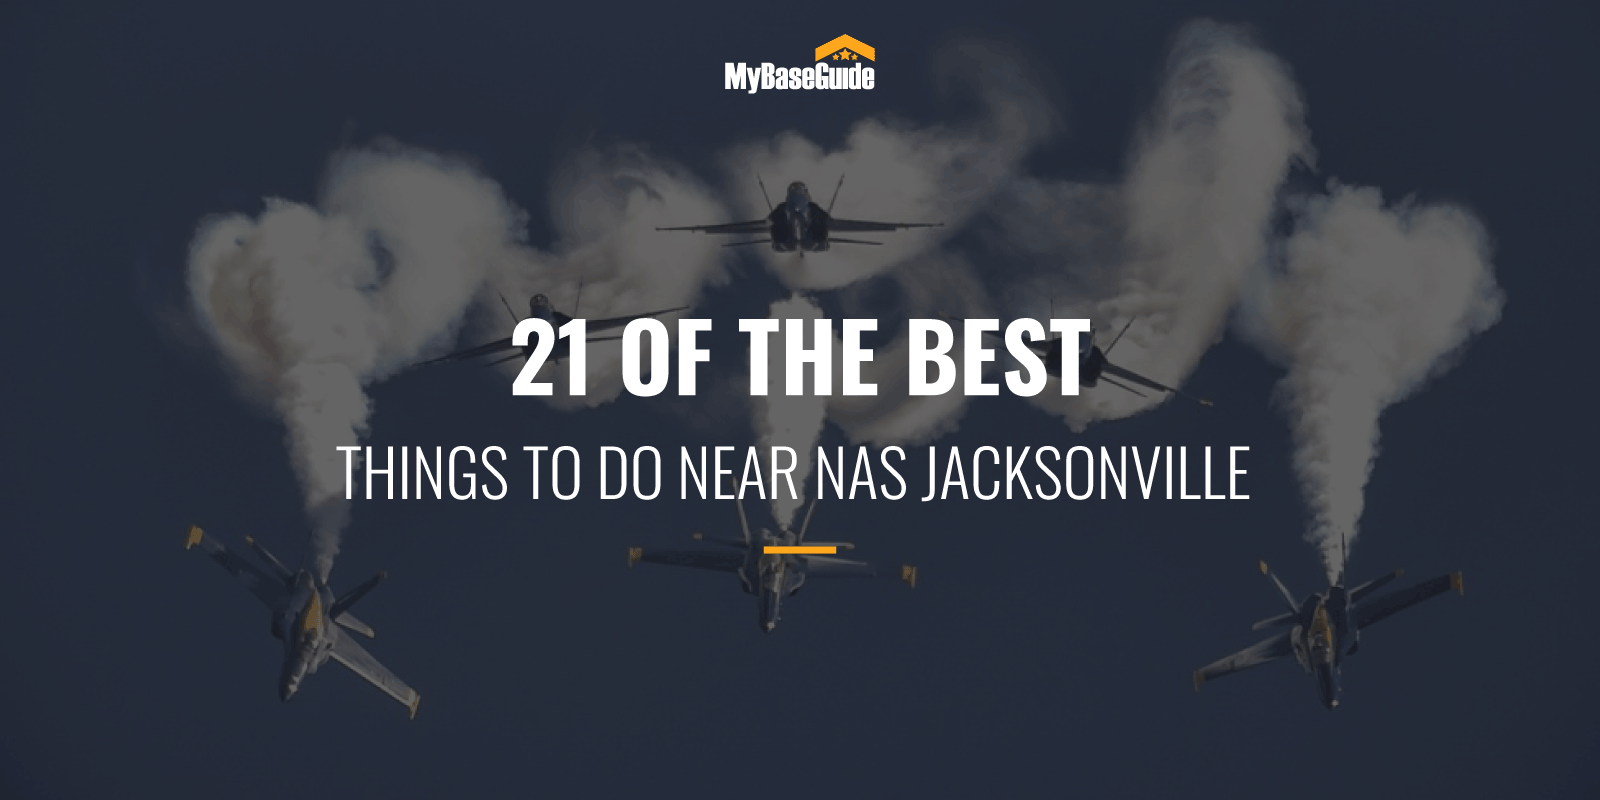 Best Things To Do near NAS Jacksonville